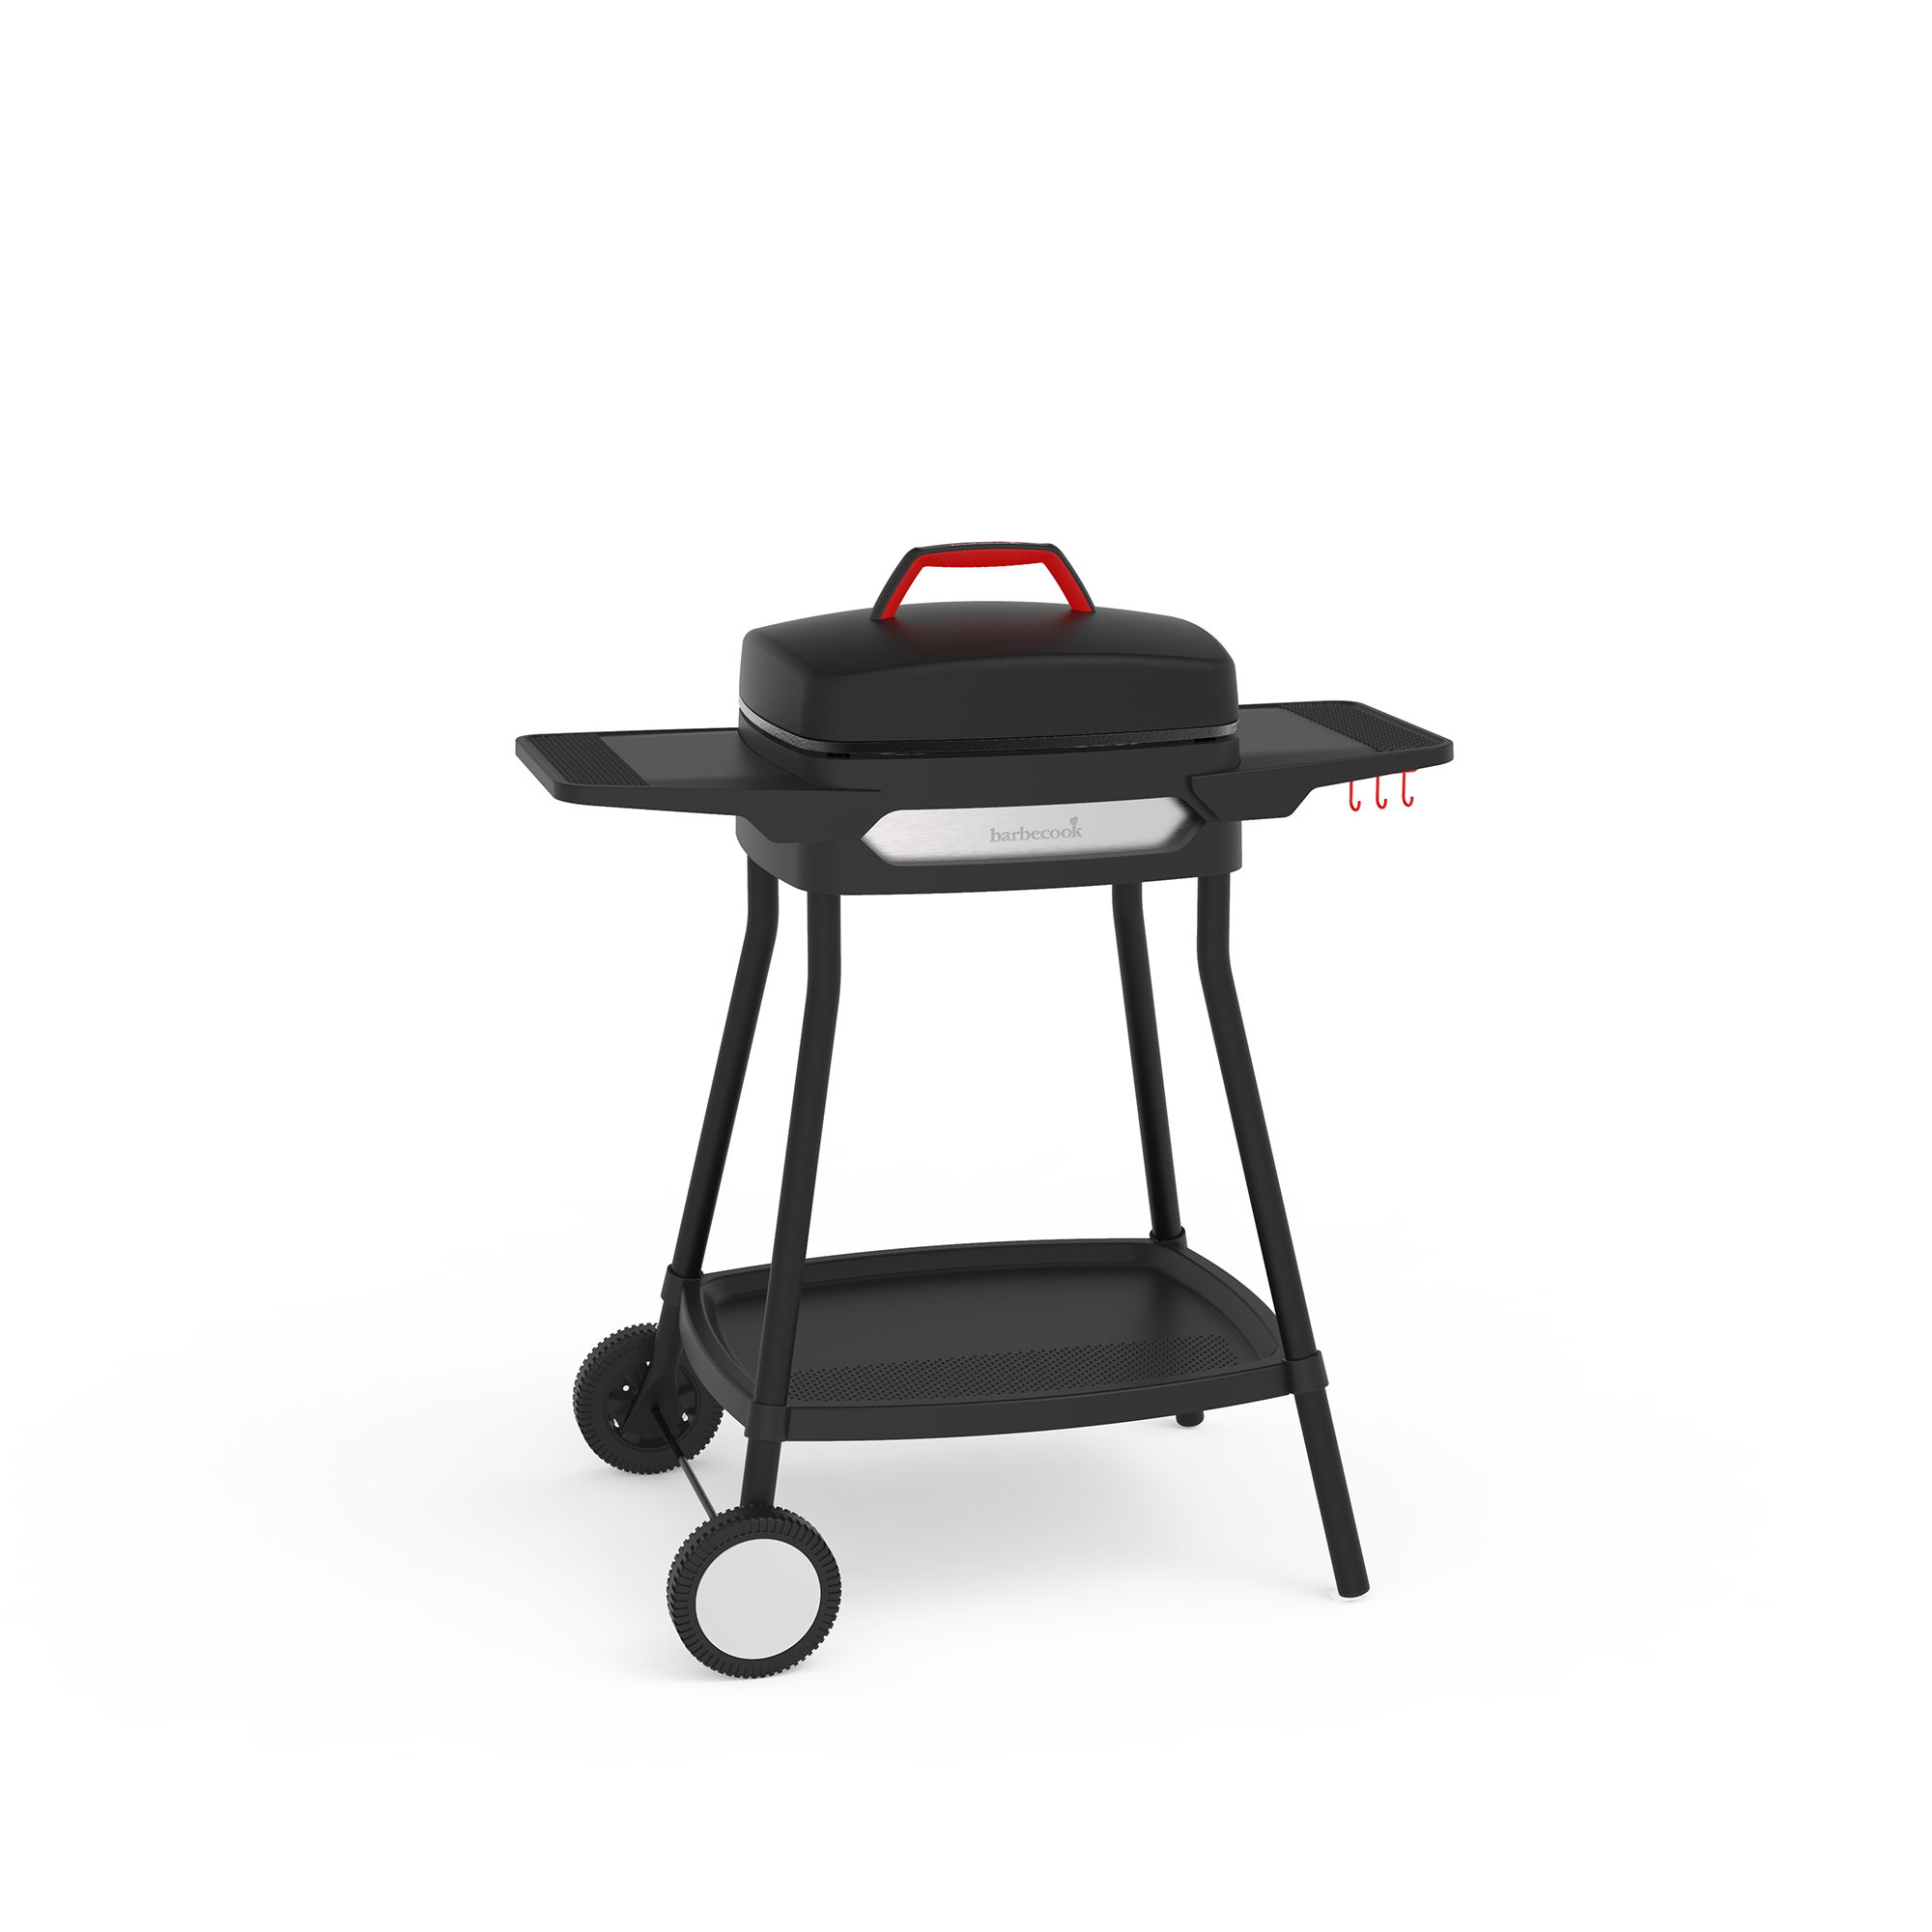 Barbecook Alexia 5111 electric barbecue with side